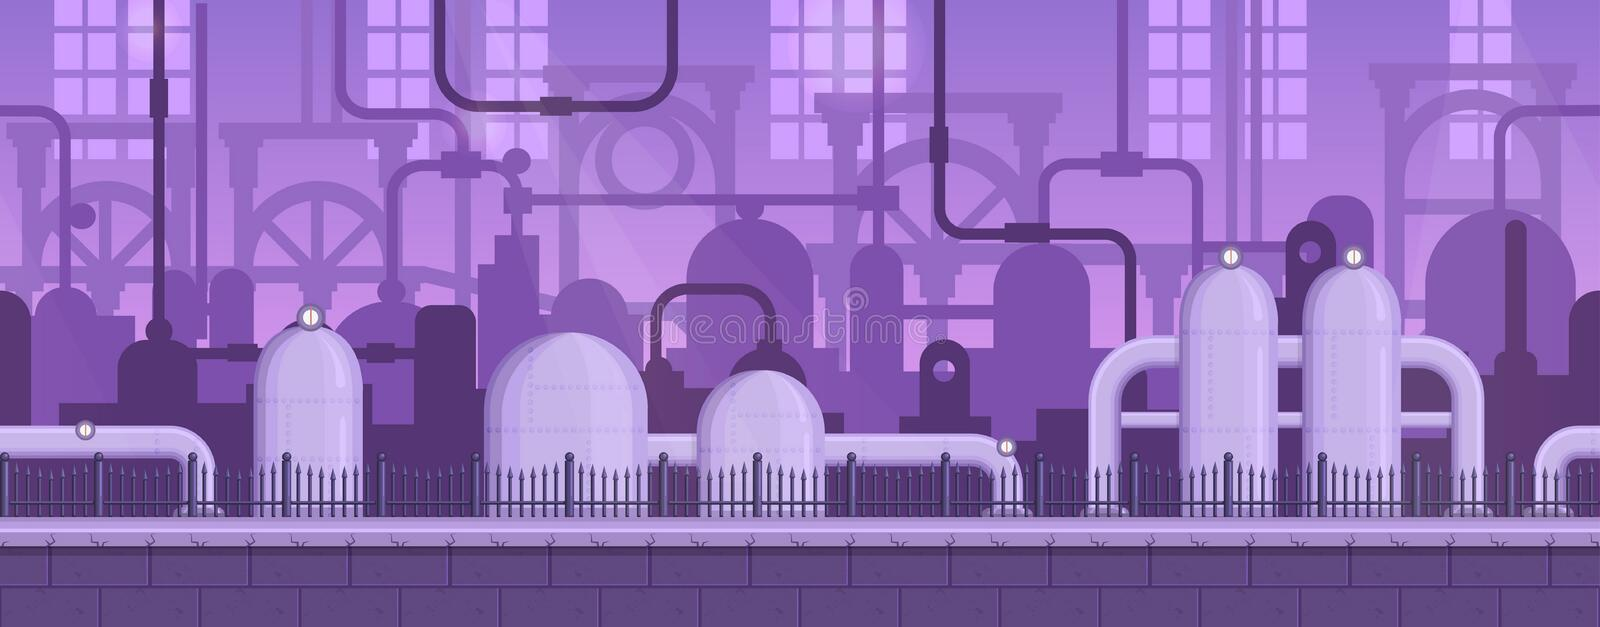 Parallax ready game industrial background stock illustration